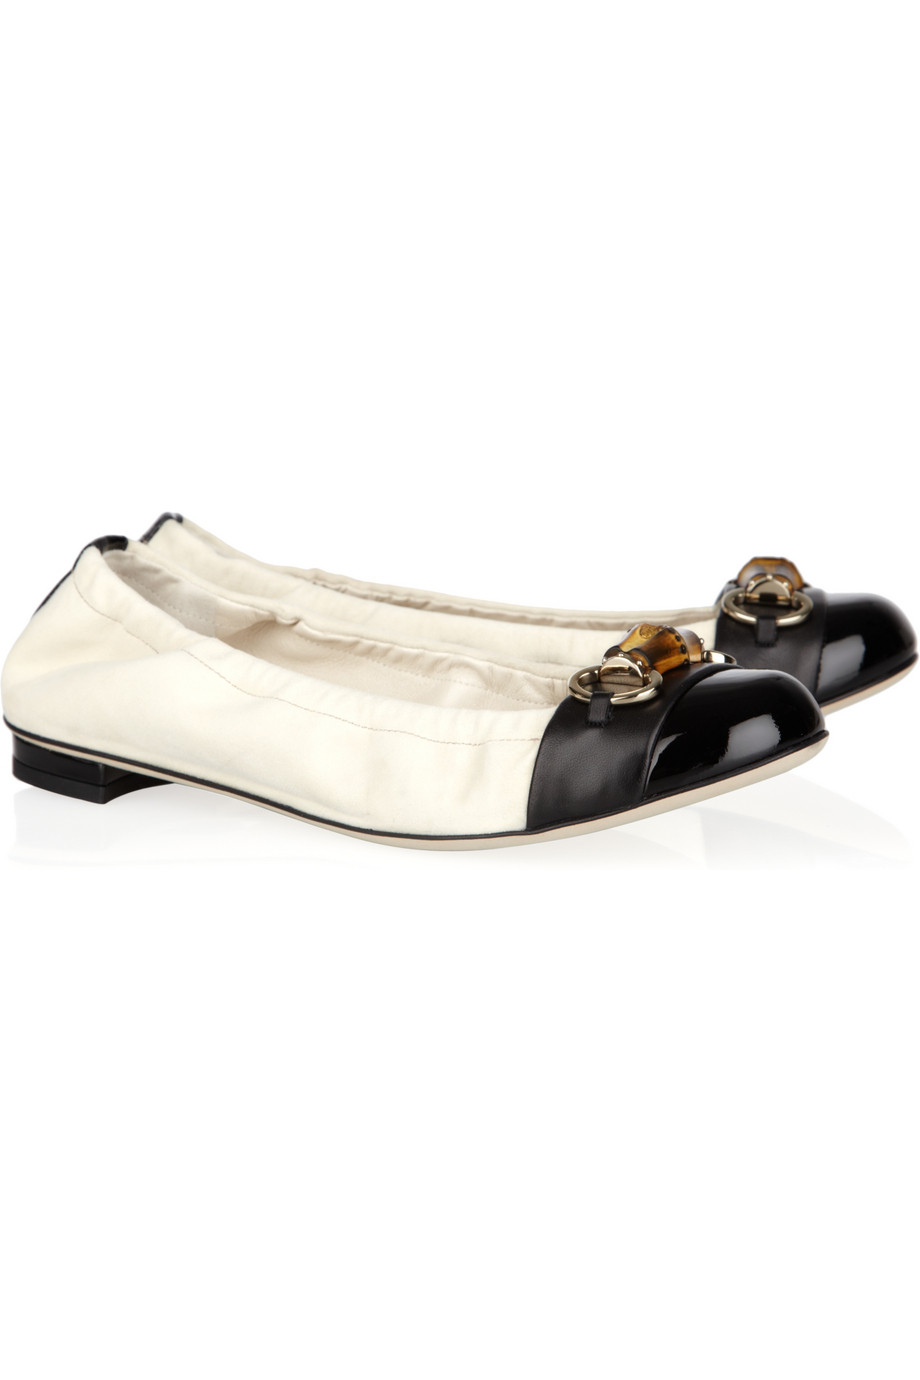 gucci suede and leather ballet flats in black white lyst. Black Bedroom Furniture Sets. Home Design Ideas